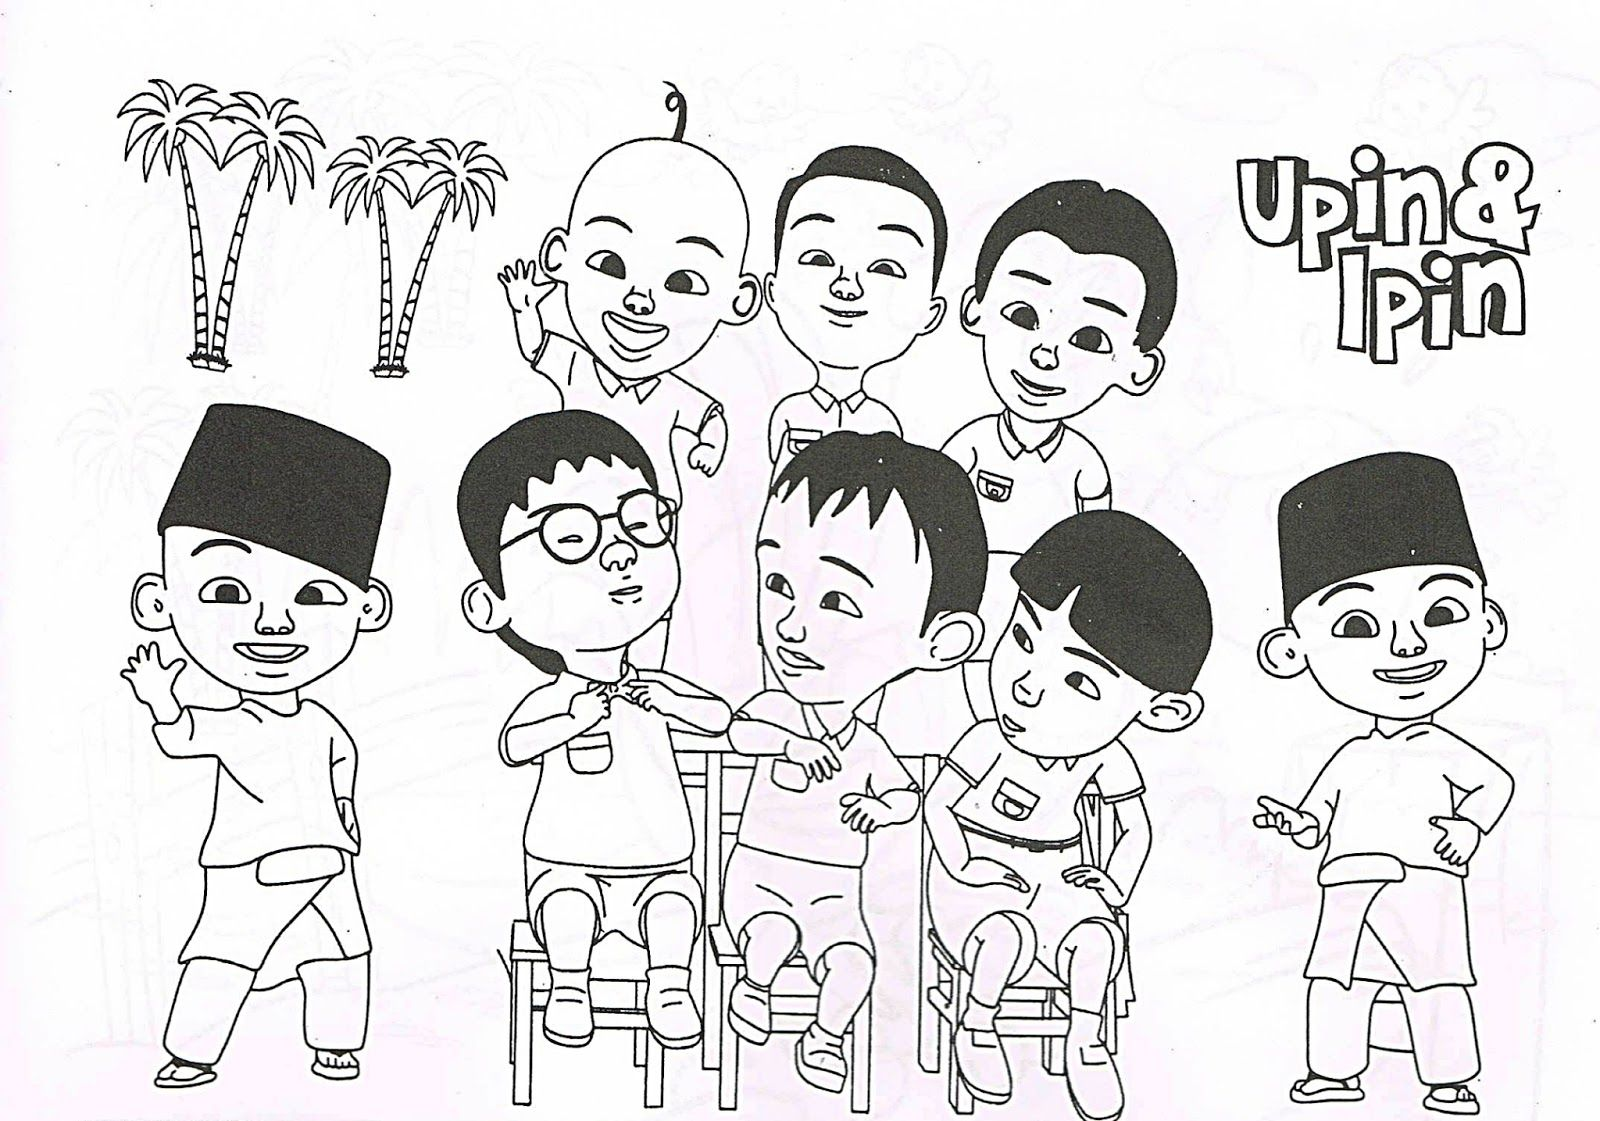 Upin Ipin Coloring Pages plete Coloring Pages